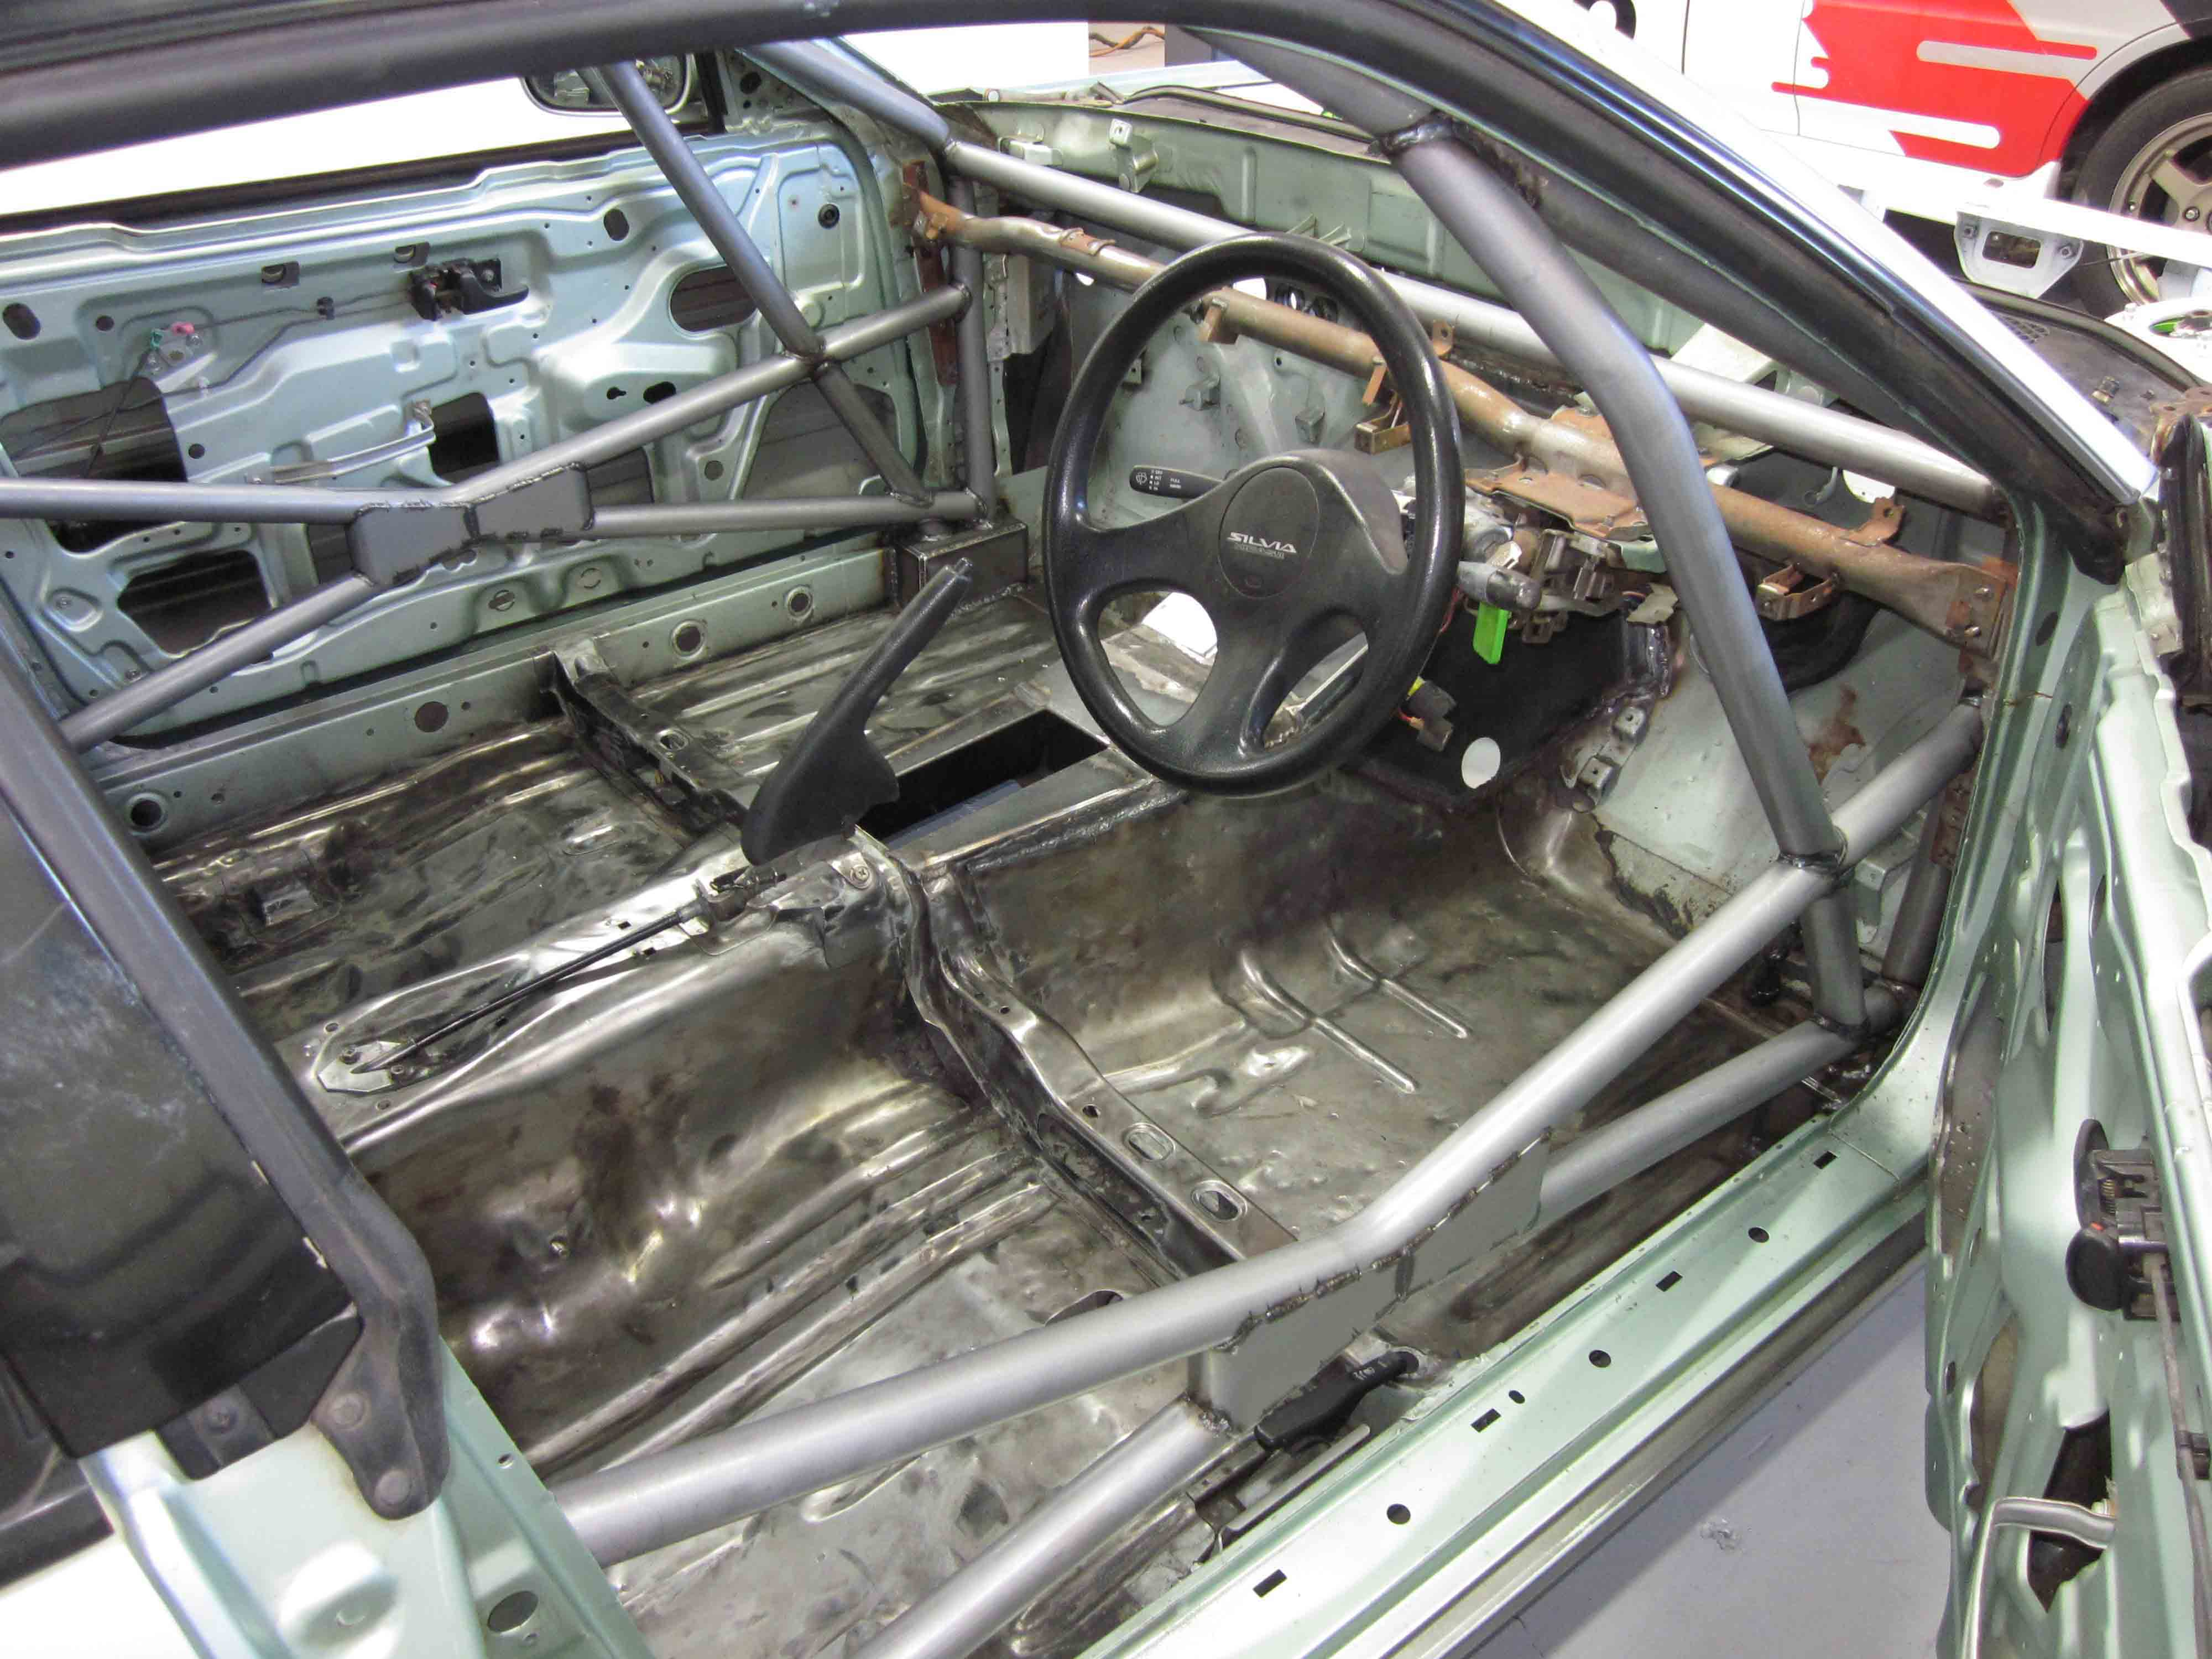 H Nissan Silvia S13 Full Cage 6 Point Weld In